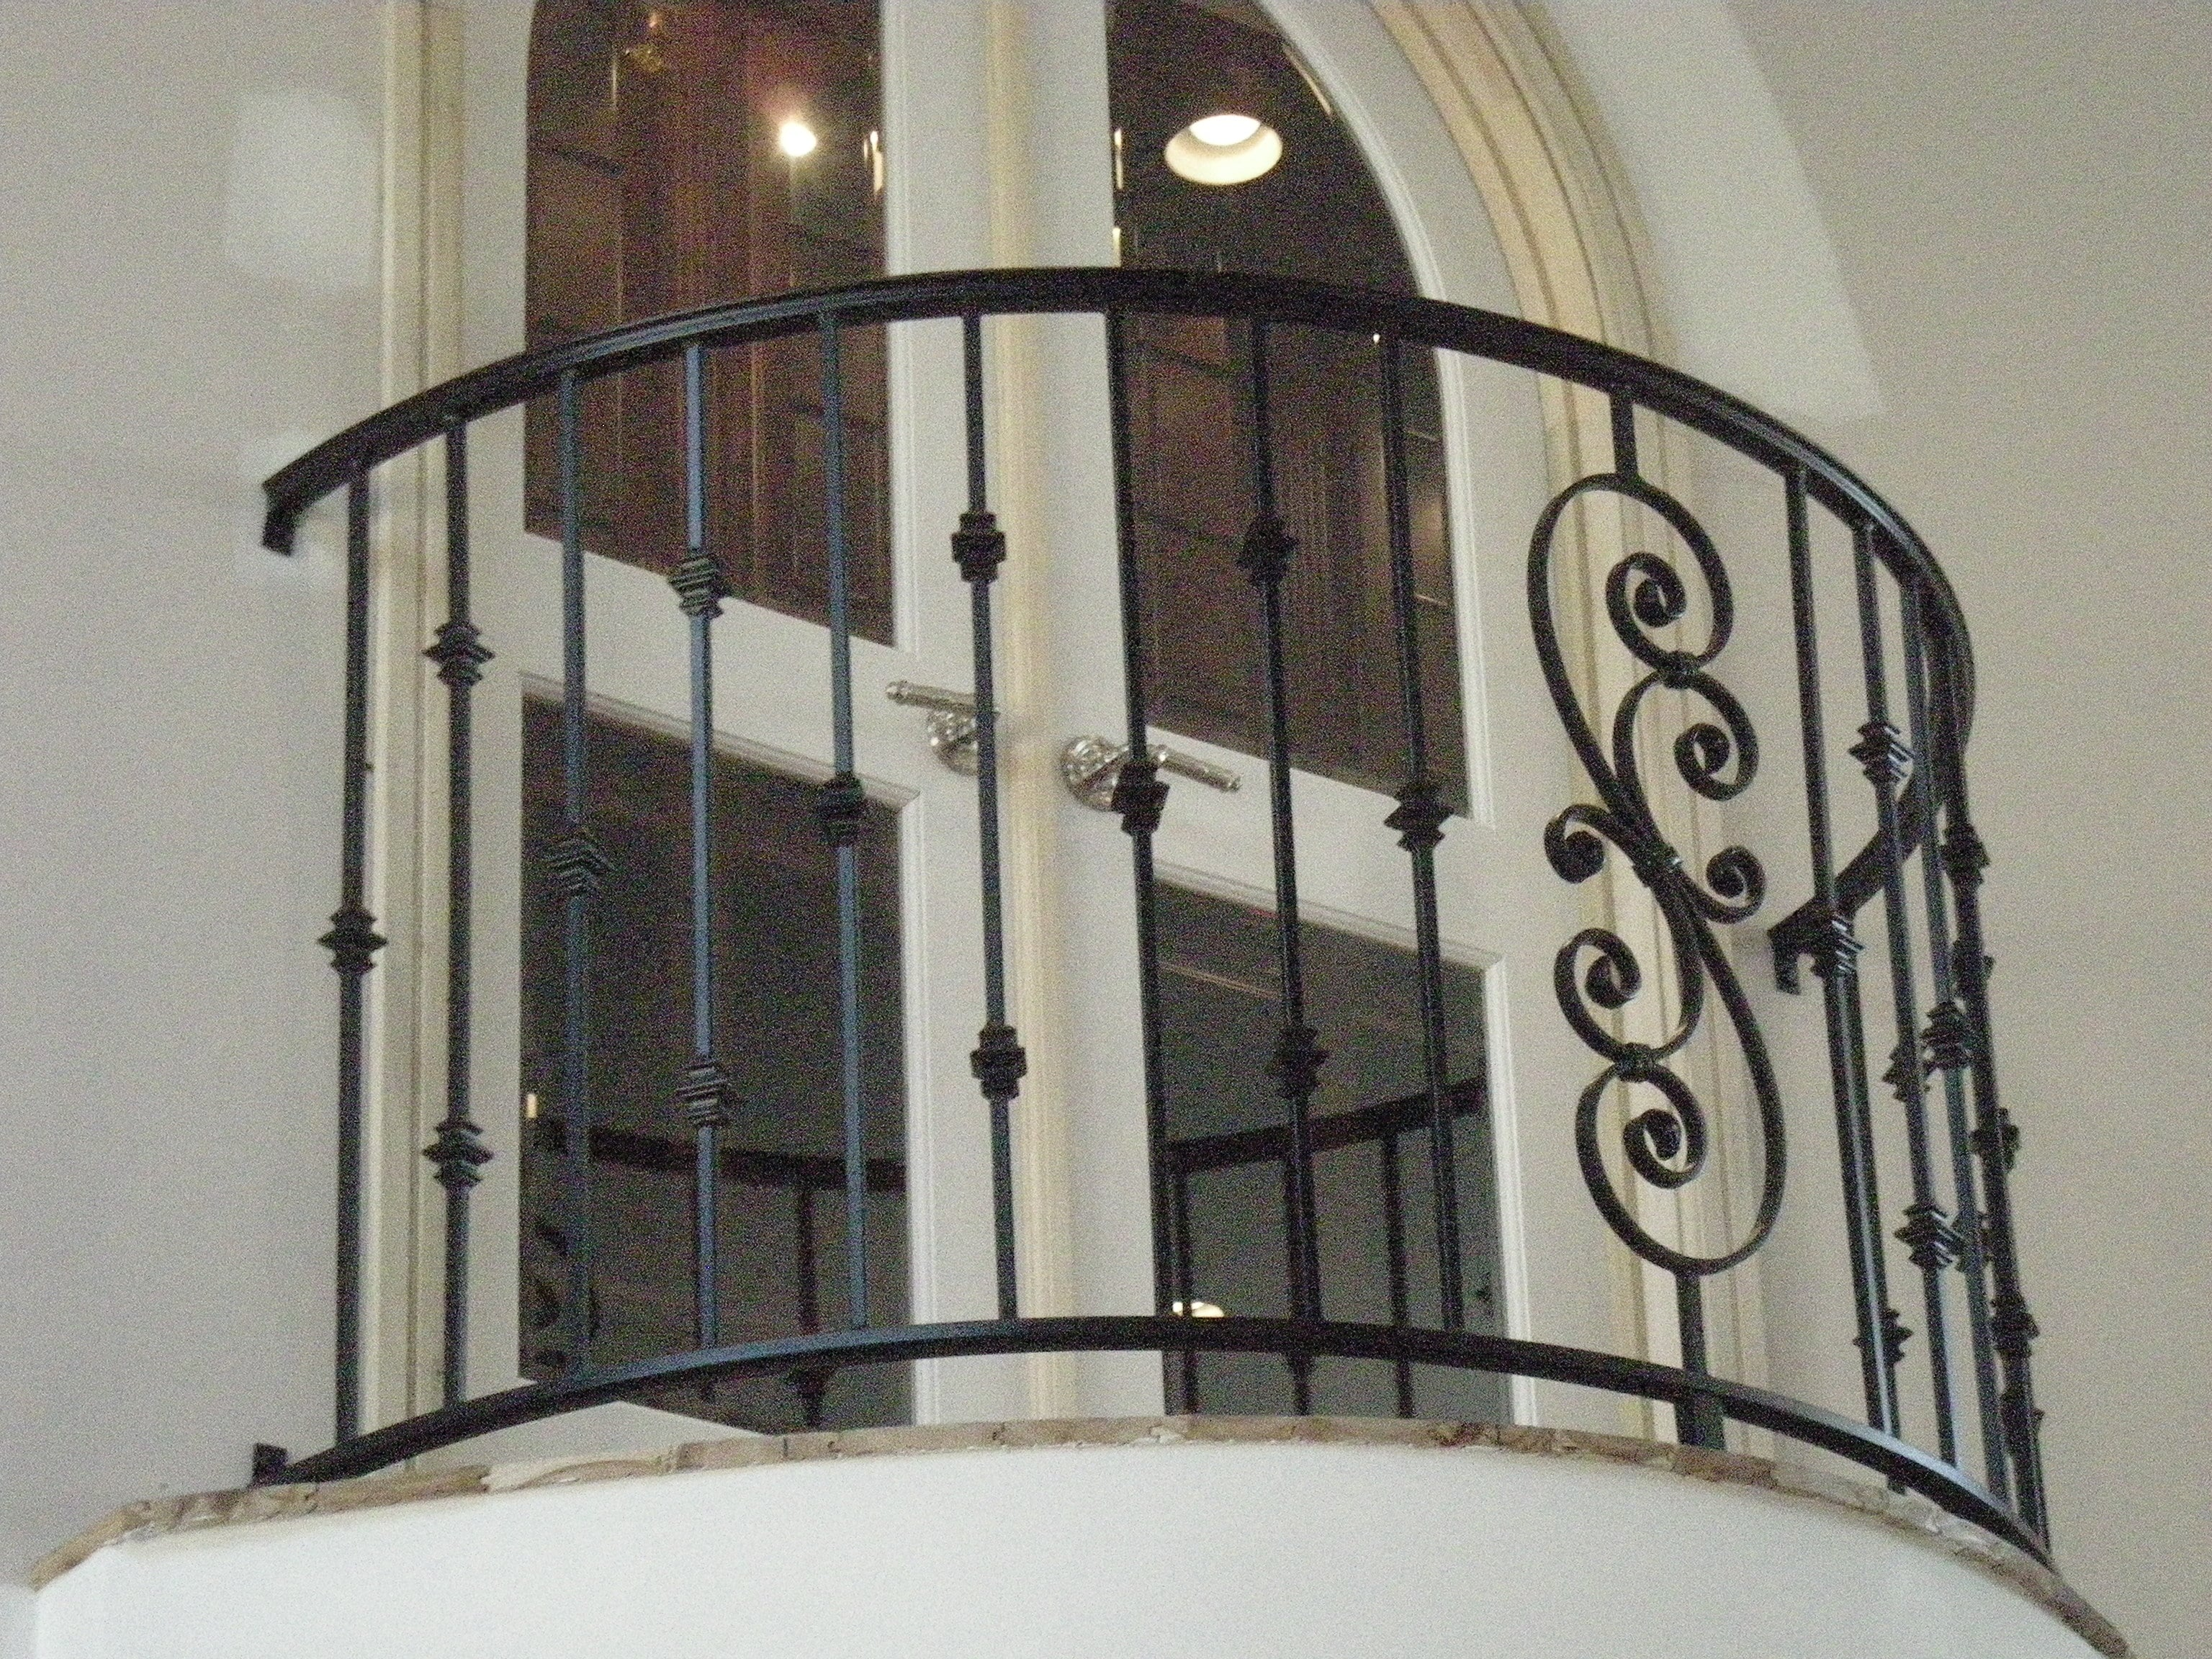 Railing On Balcony Image